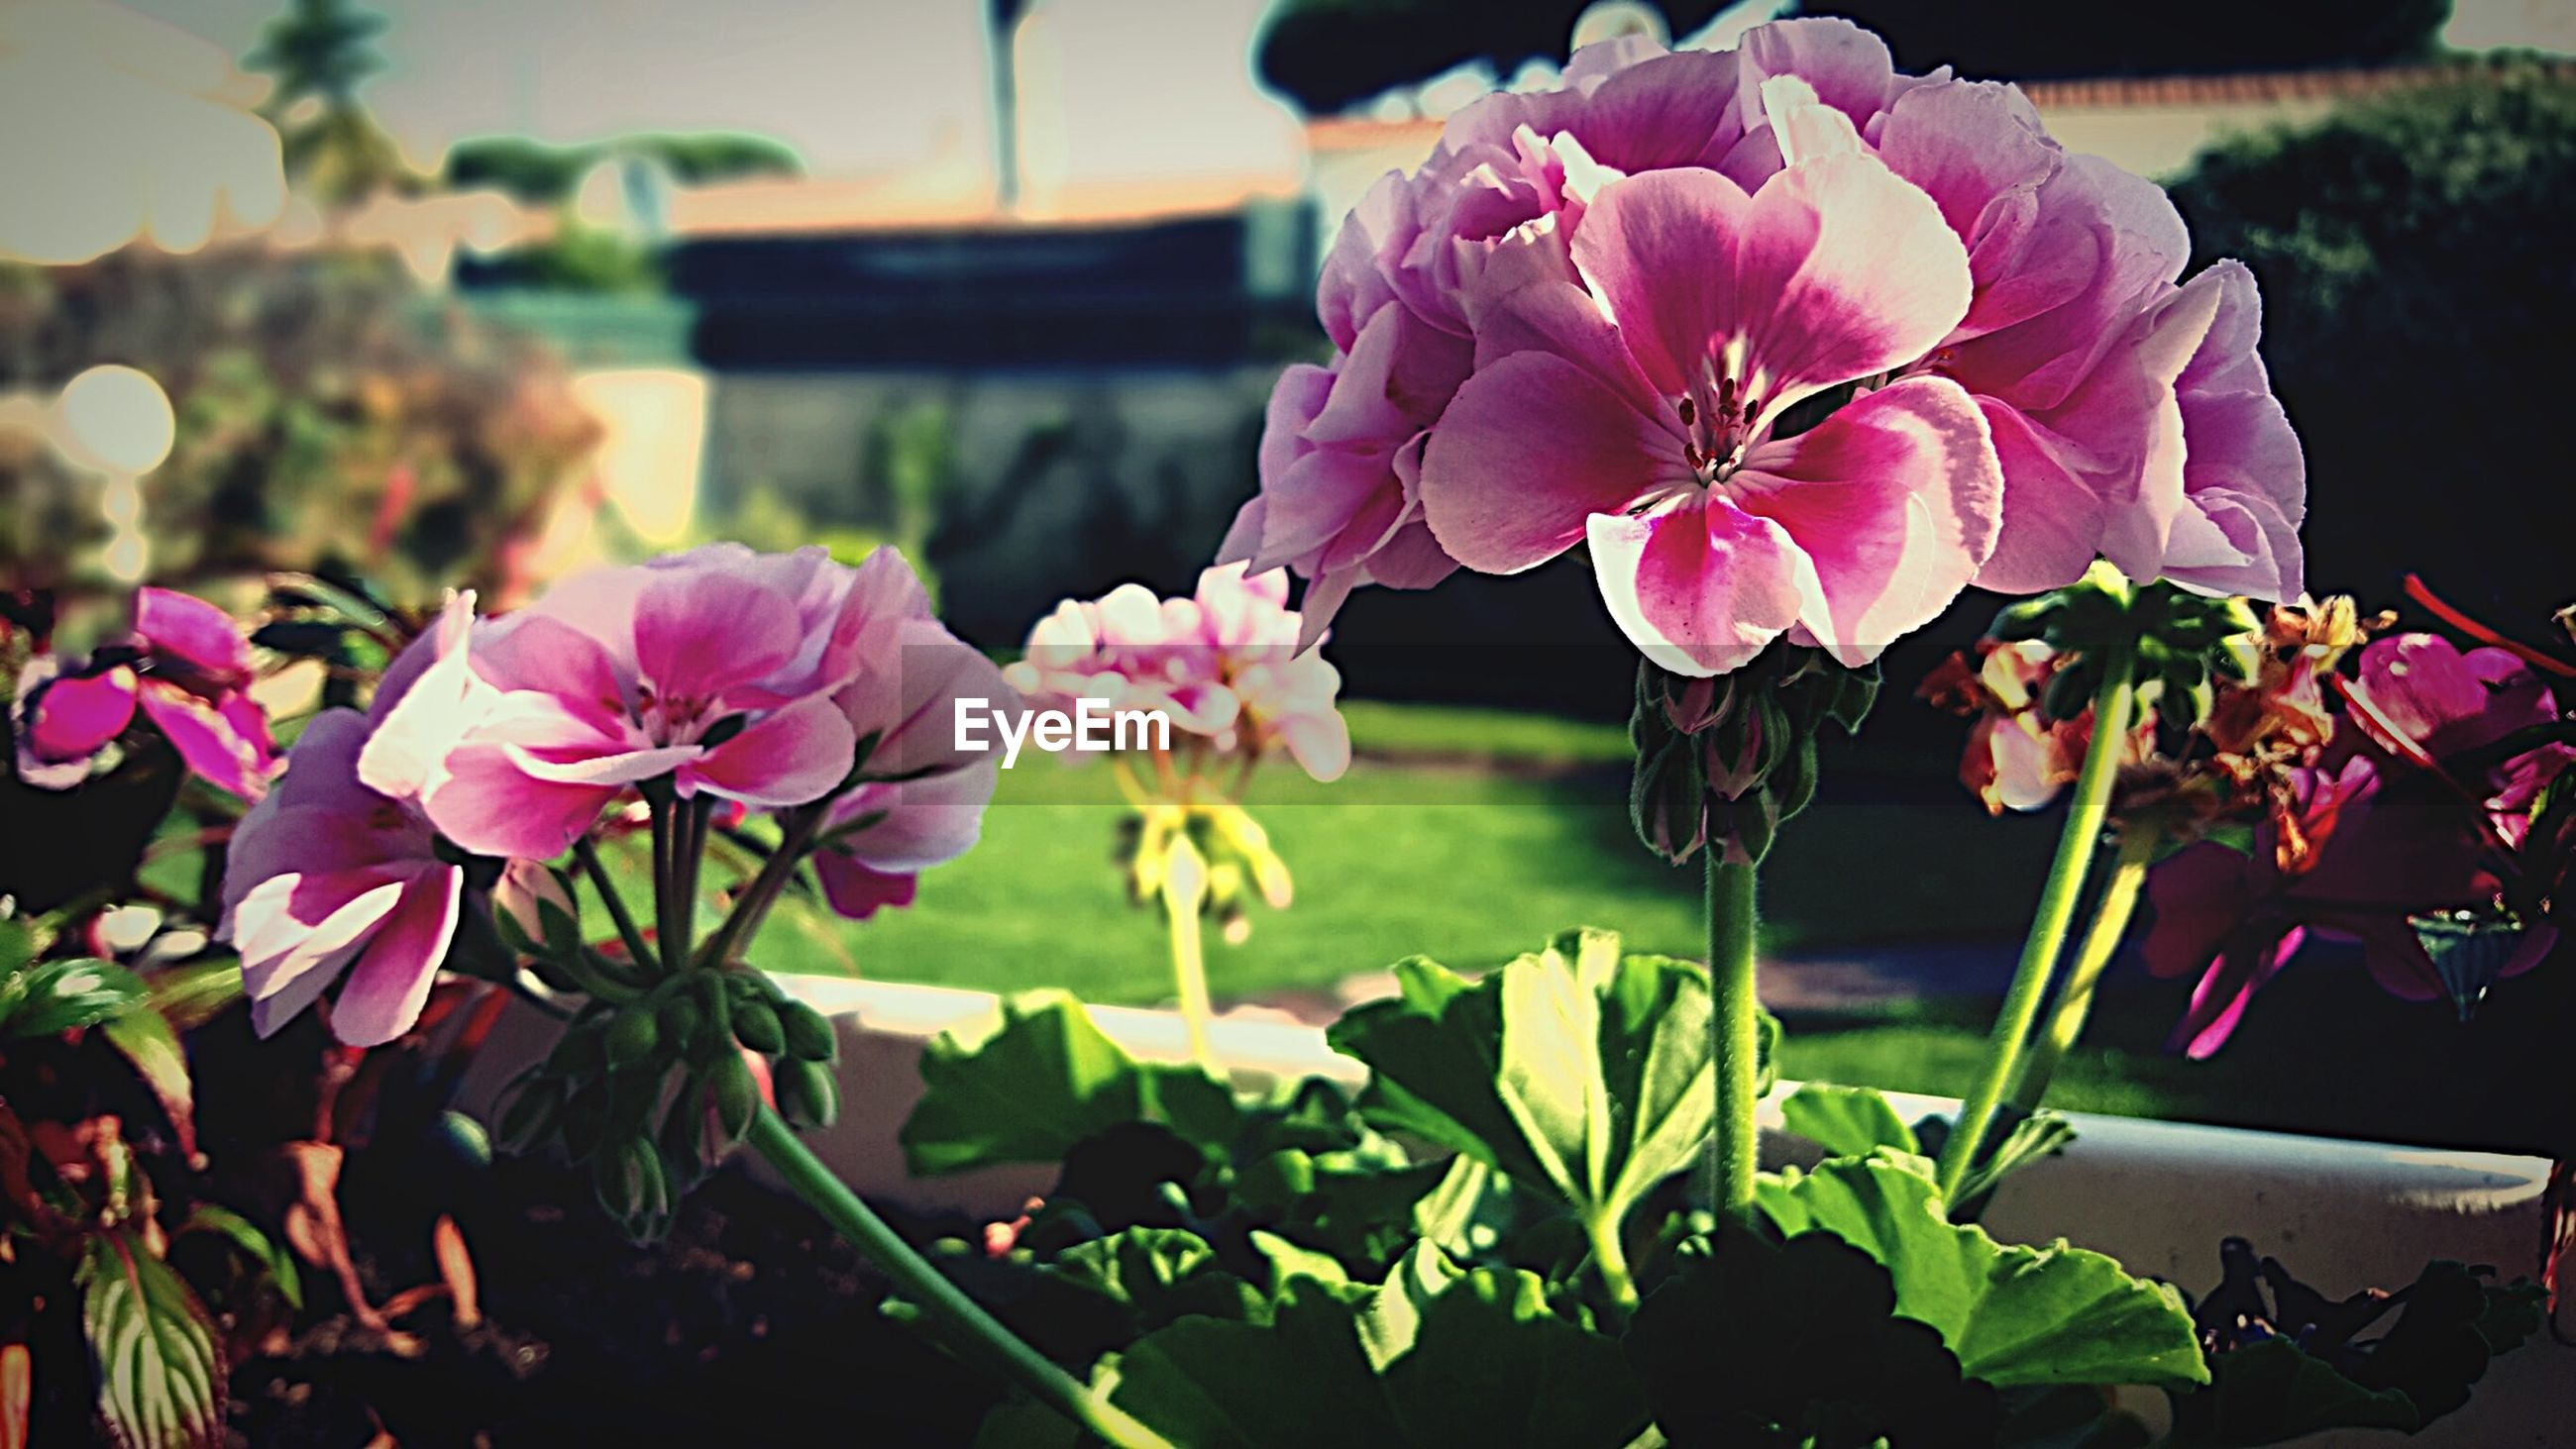 flower, freshness, petal, fragility, growth, plant, beauty in nature, flower head, nature, blooming, focus on foreground, pink color, close-up, potted plant, leaf, stem, in bloom, day, indoors, no people